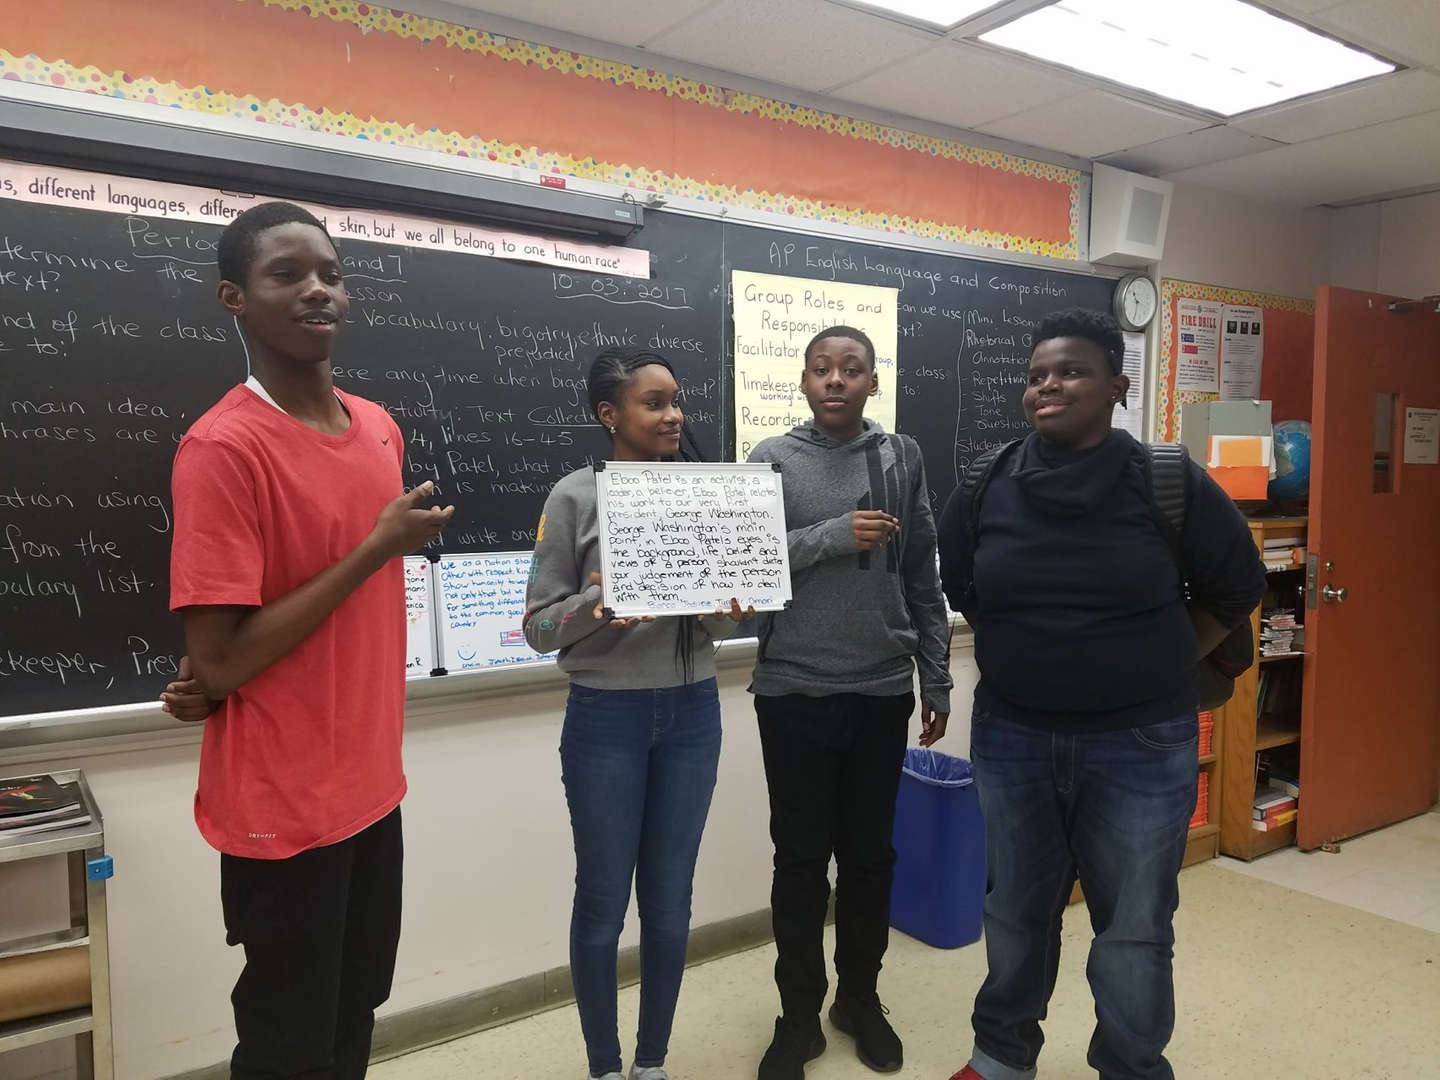 Four students presenting off a white board in class